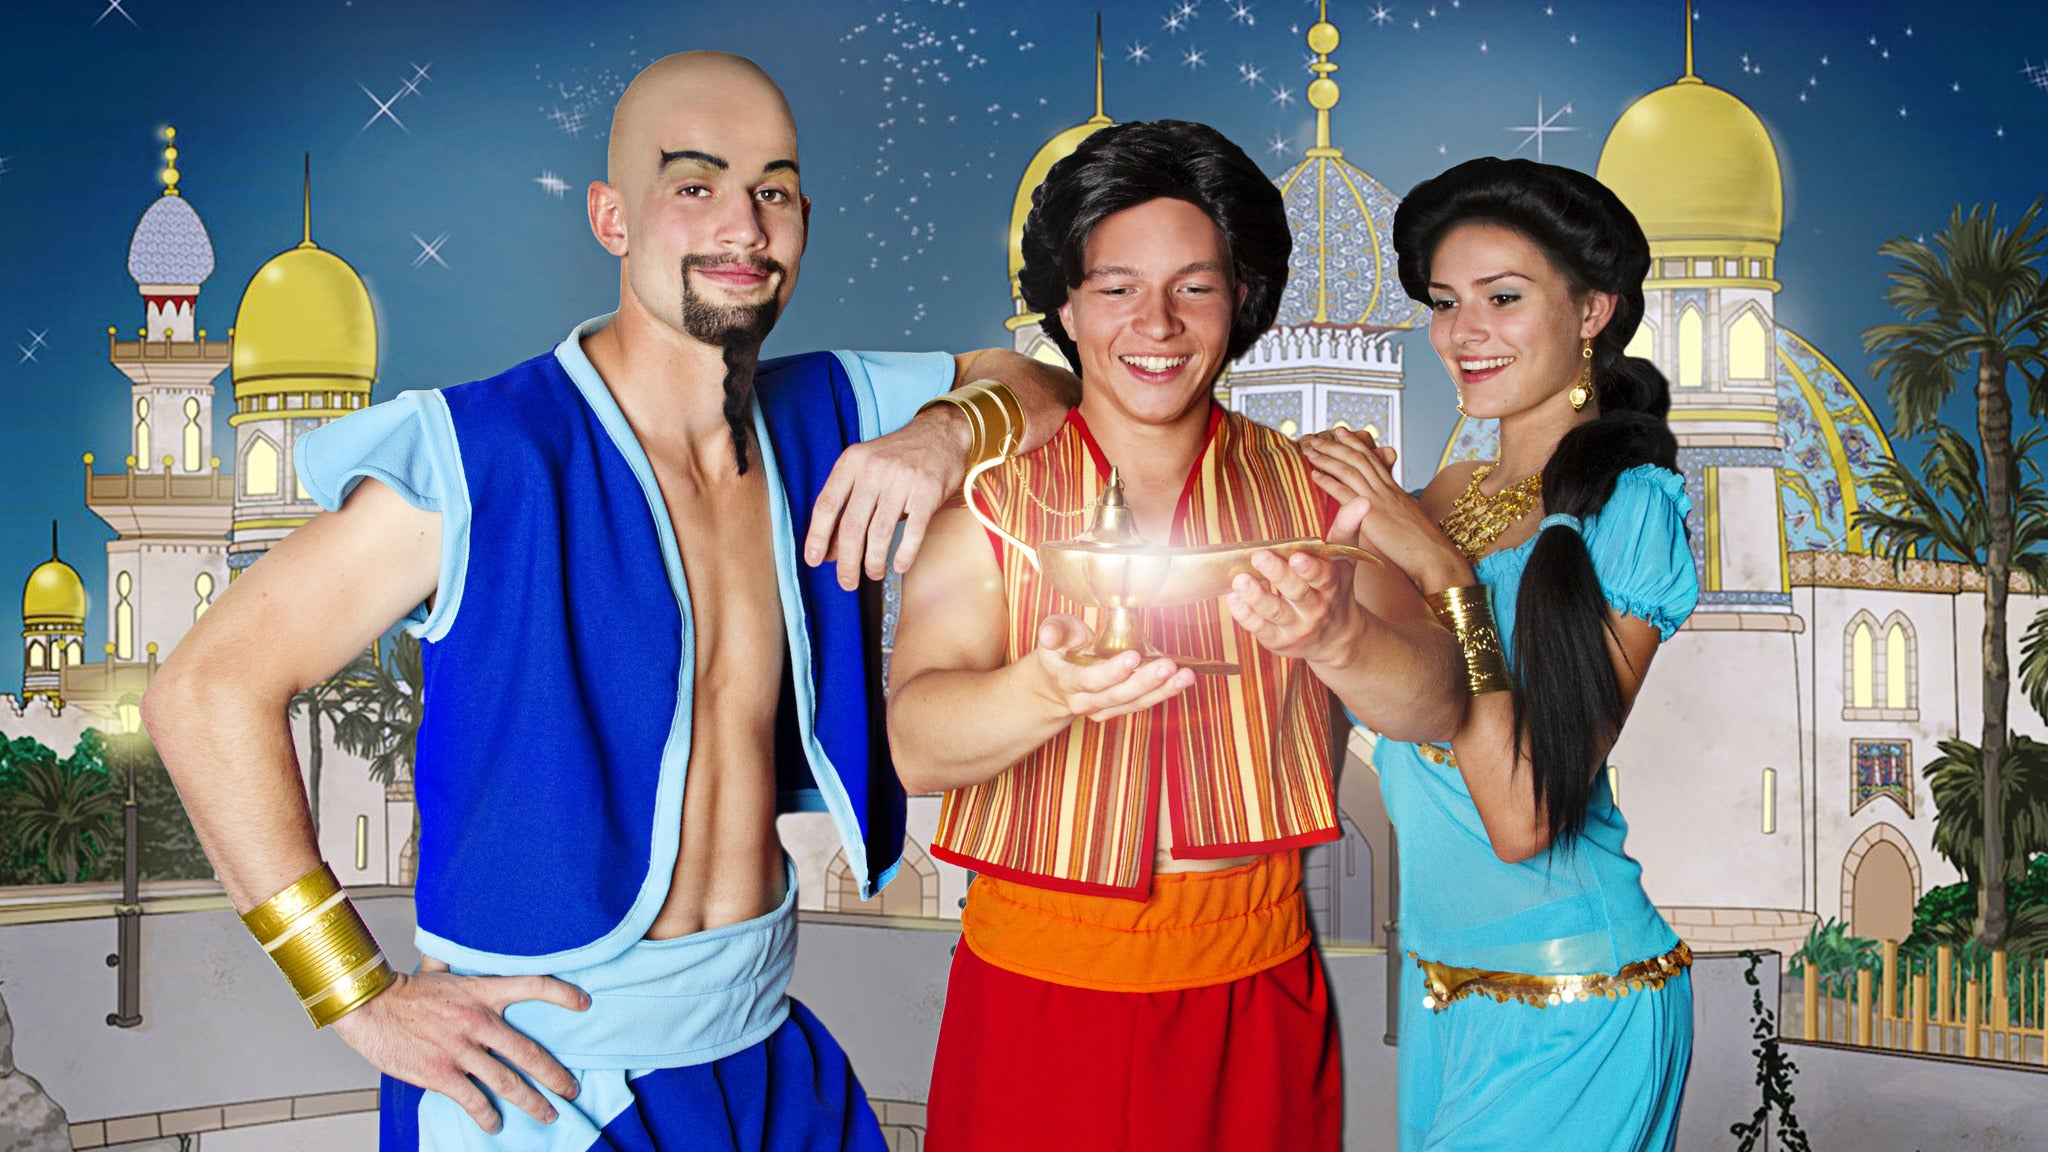 SORRY, THIS EVENT IS NO LONGER ACTIVE<br>Aladdin at Orpheum Theatre-San Francisco - San Francisco, CA 94102